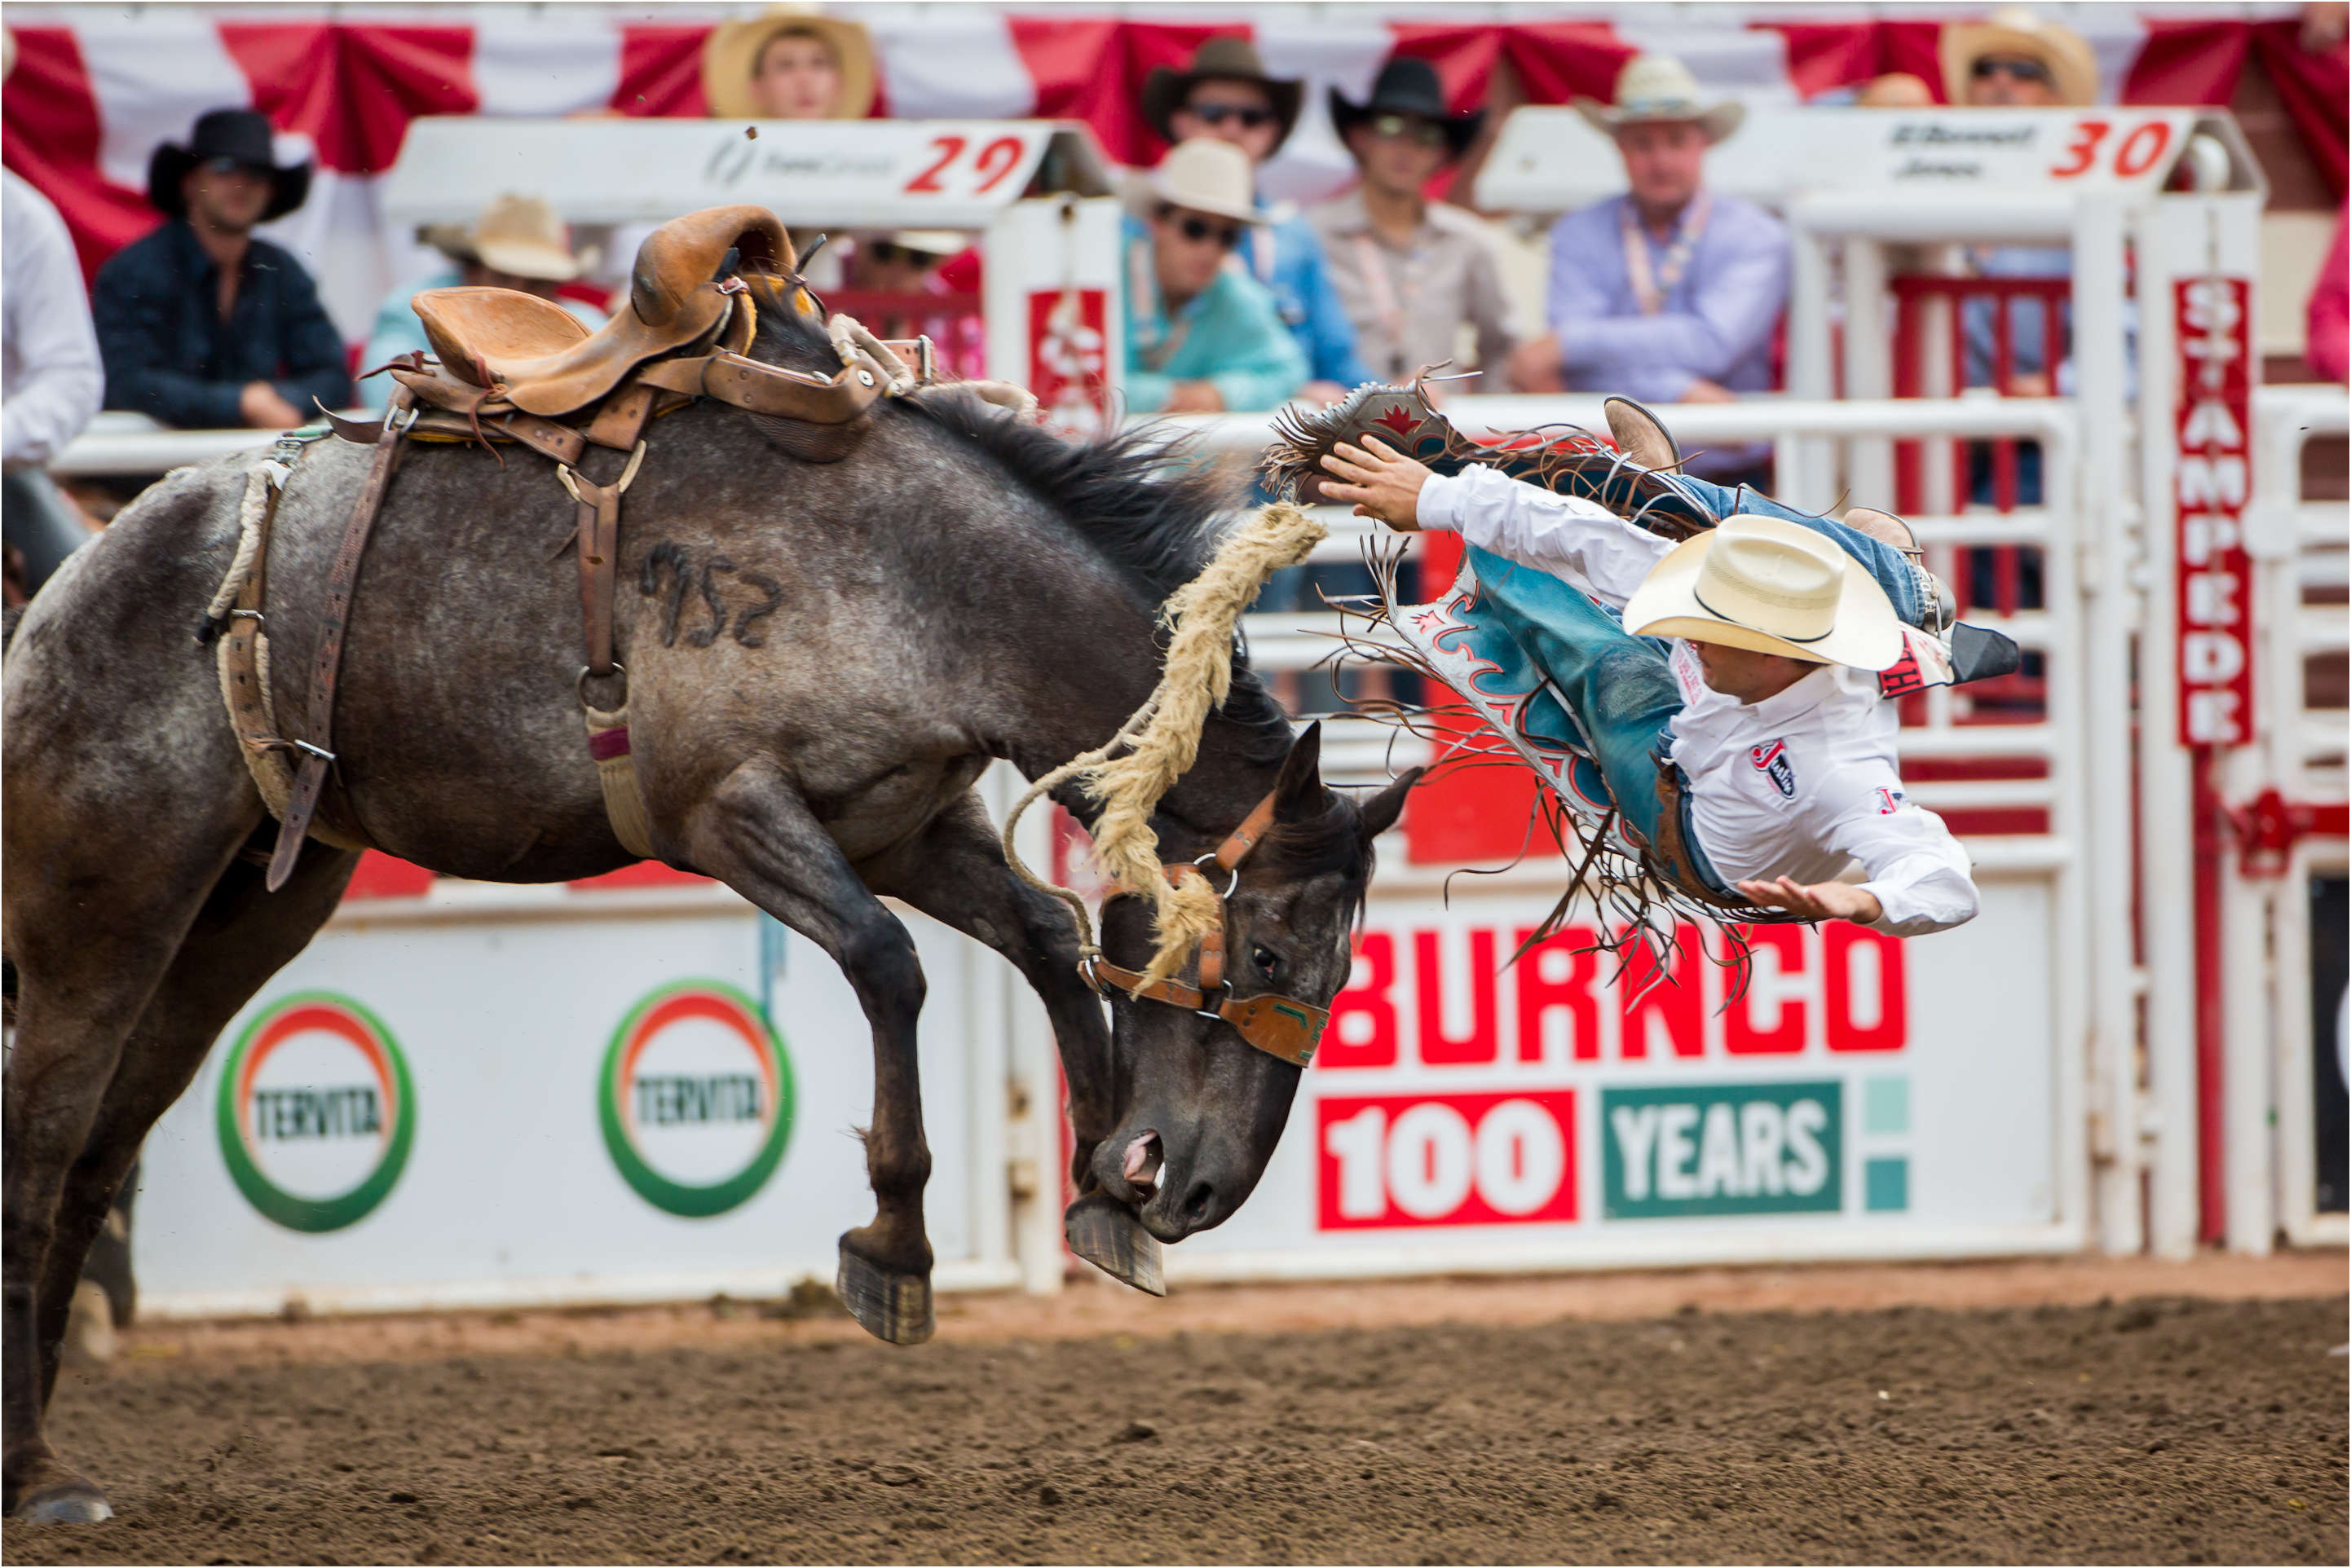 Calgary Stampede Wildcard Saturday At The Rodeo